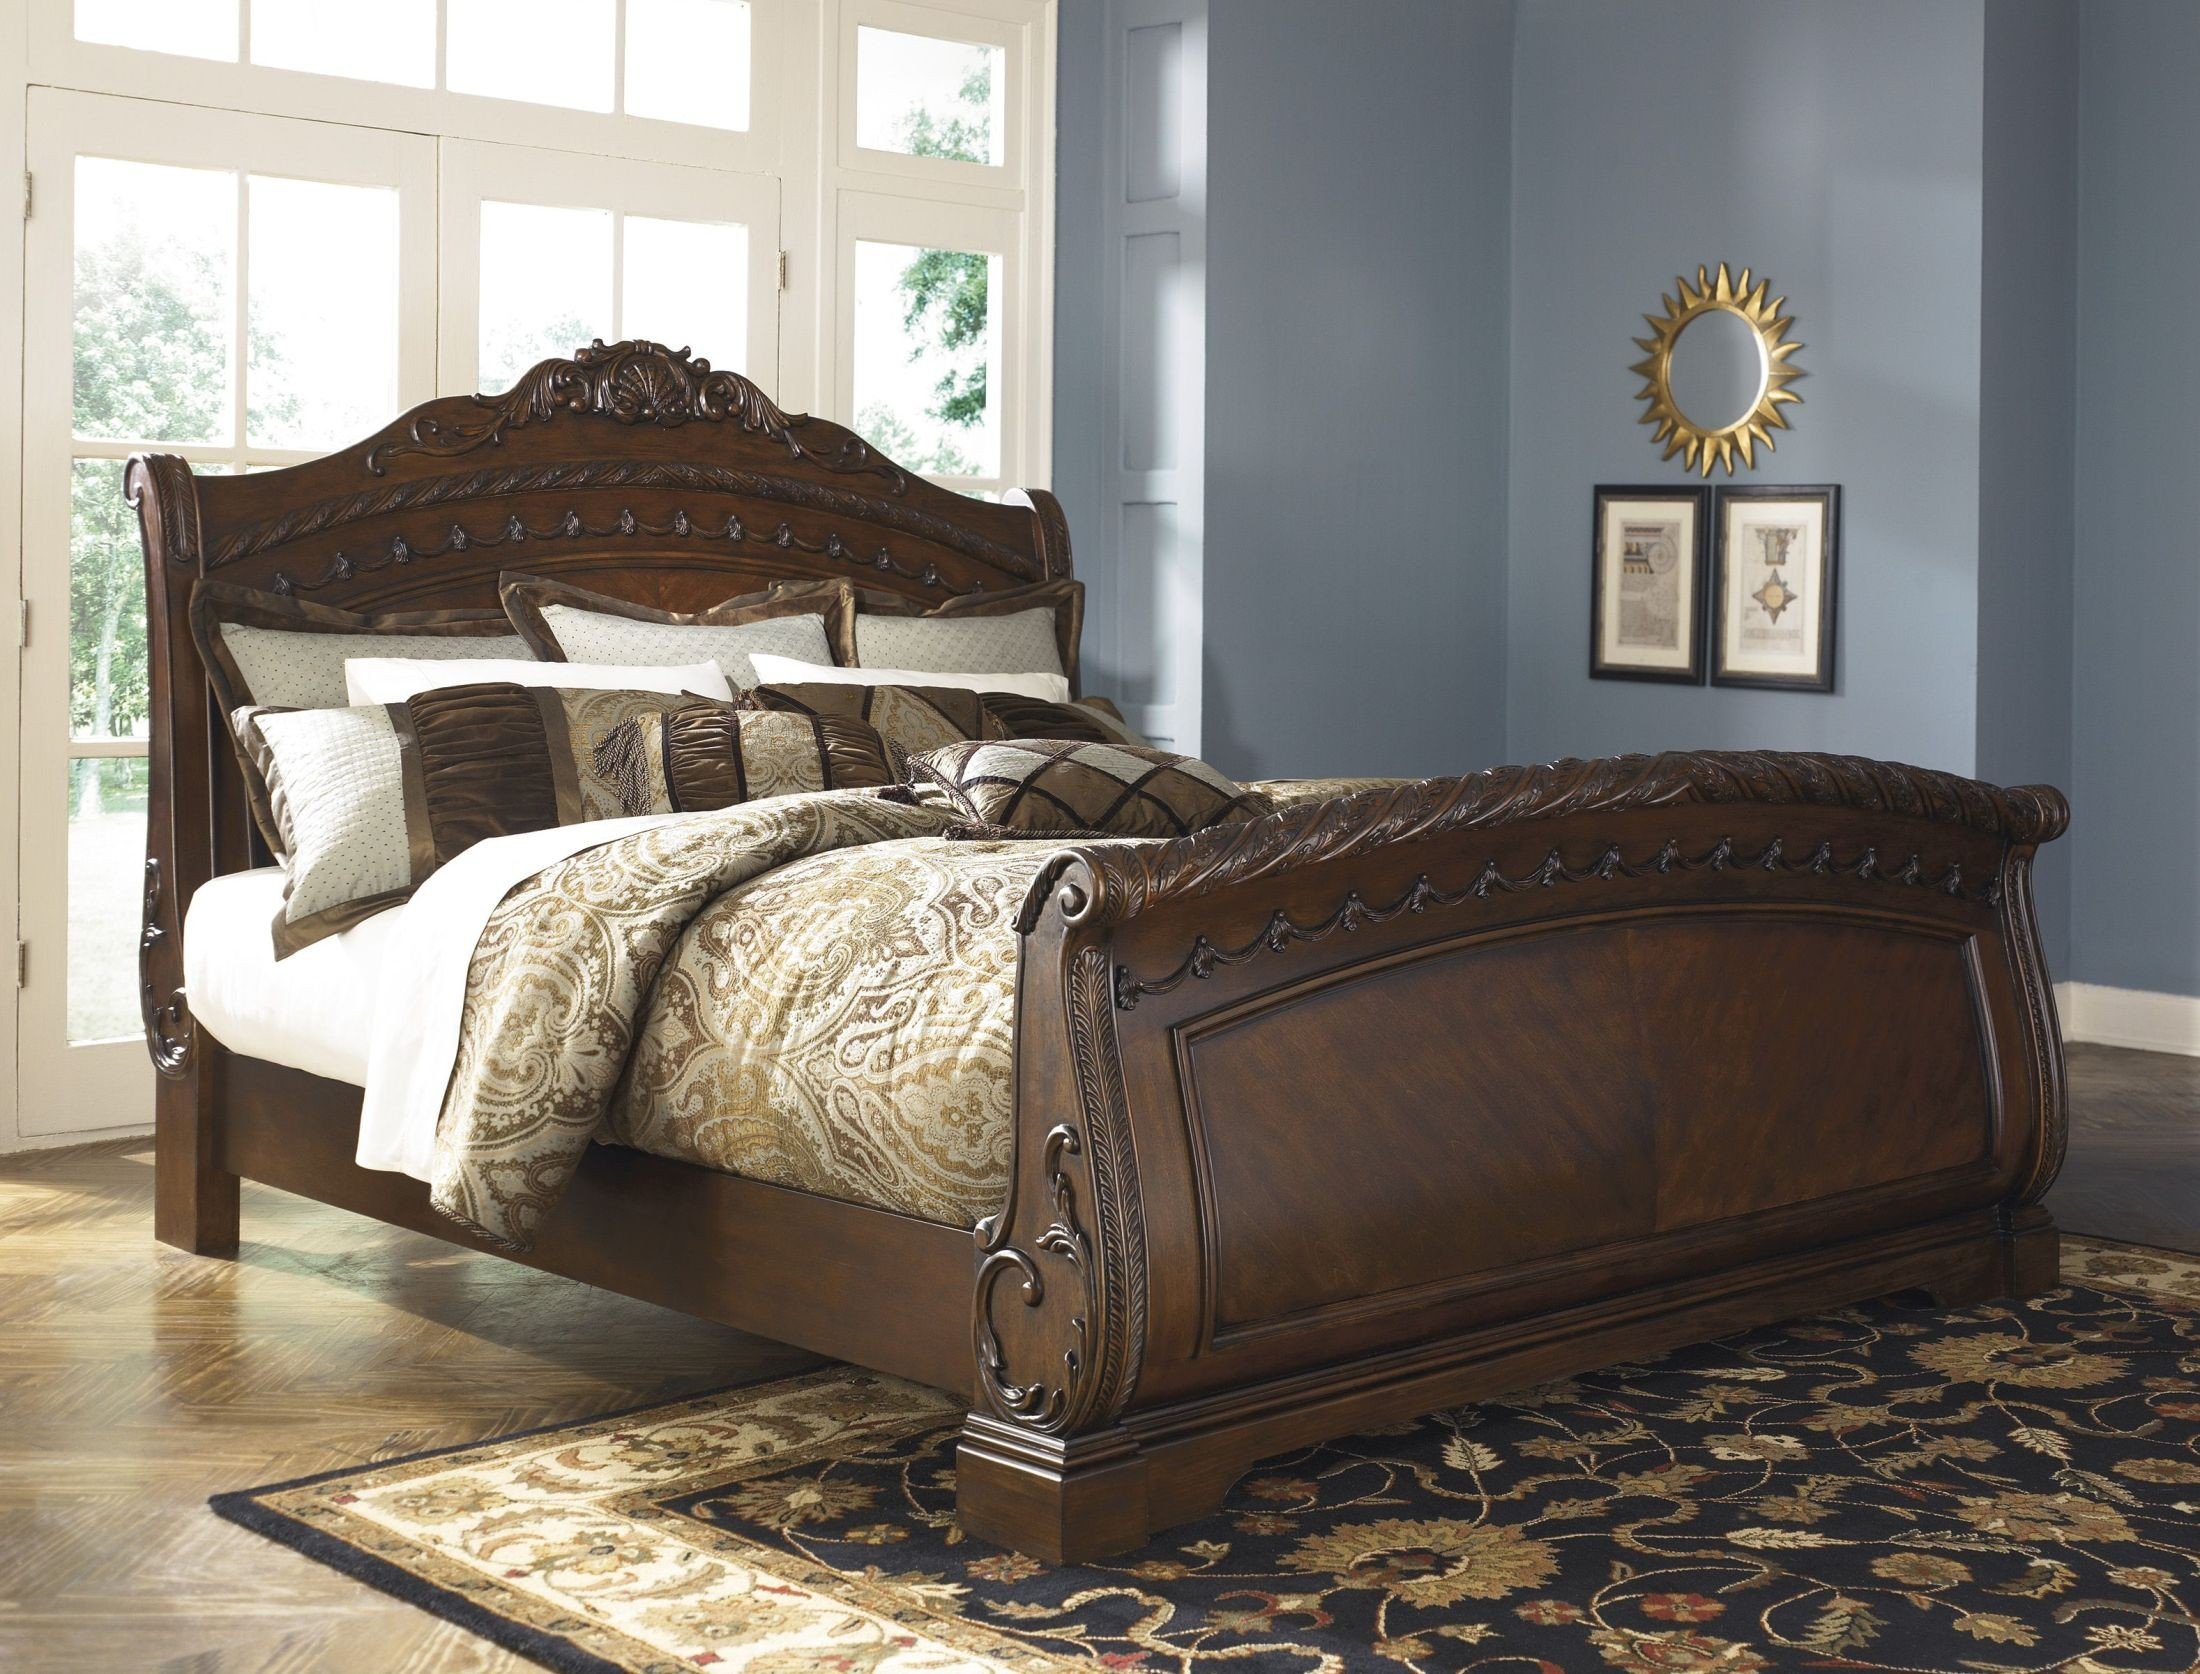 North Shore Cal King Sleigh Bed From Ashley B553 78 76 73 Coleman Furniture